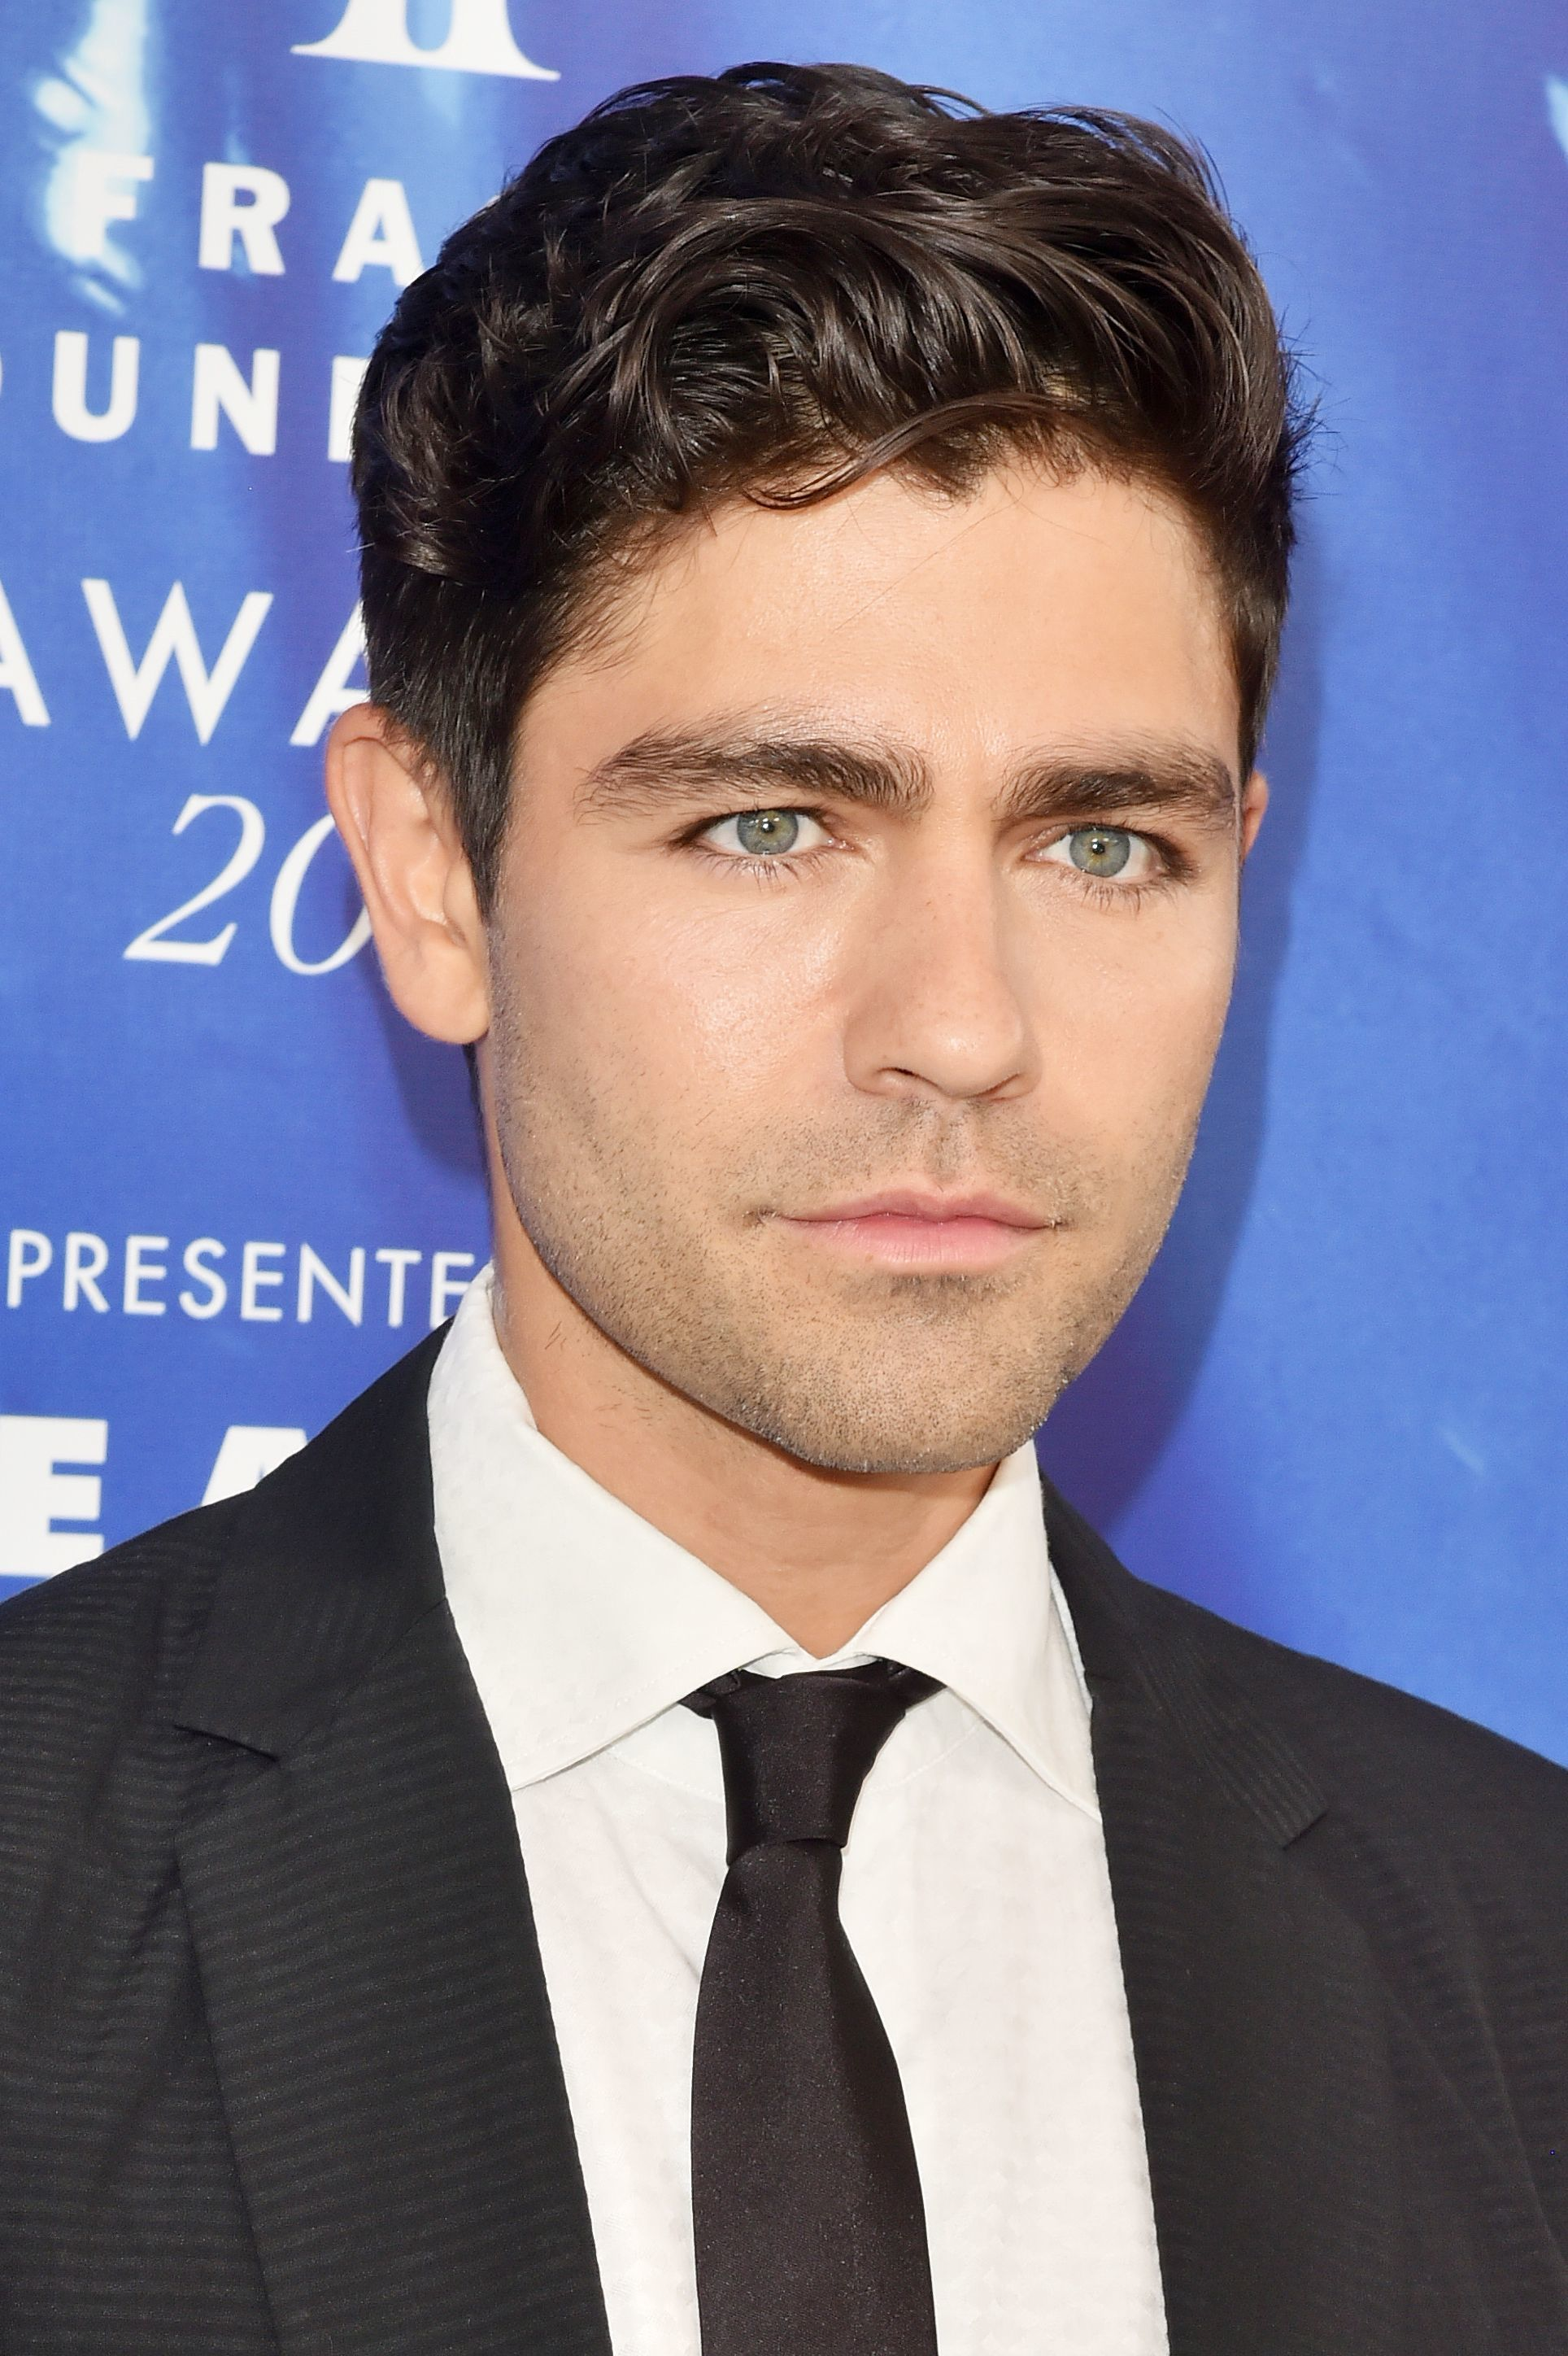 Hairstyles for men over 40: Headshot of Adrian Grenier with dark wavy hair, wearing a suit and tie